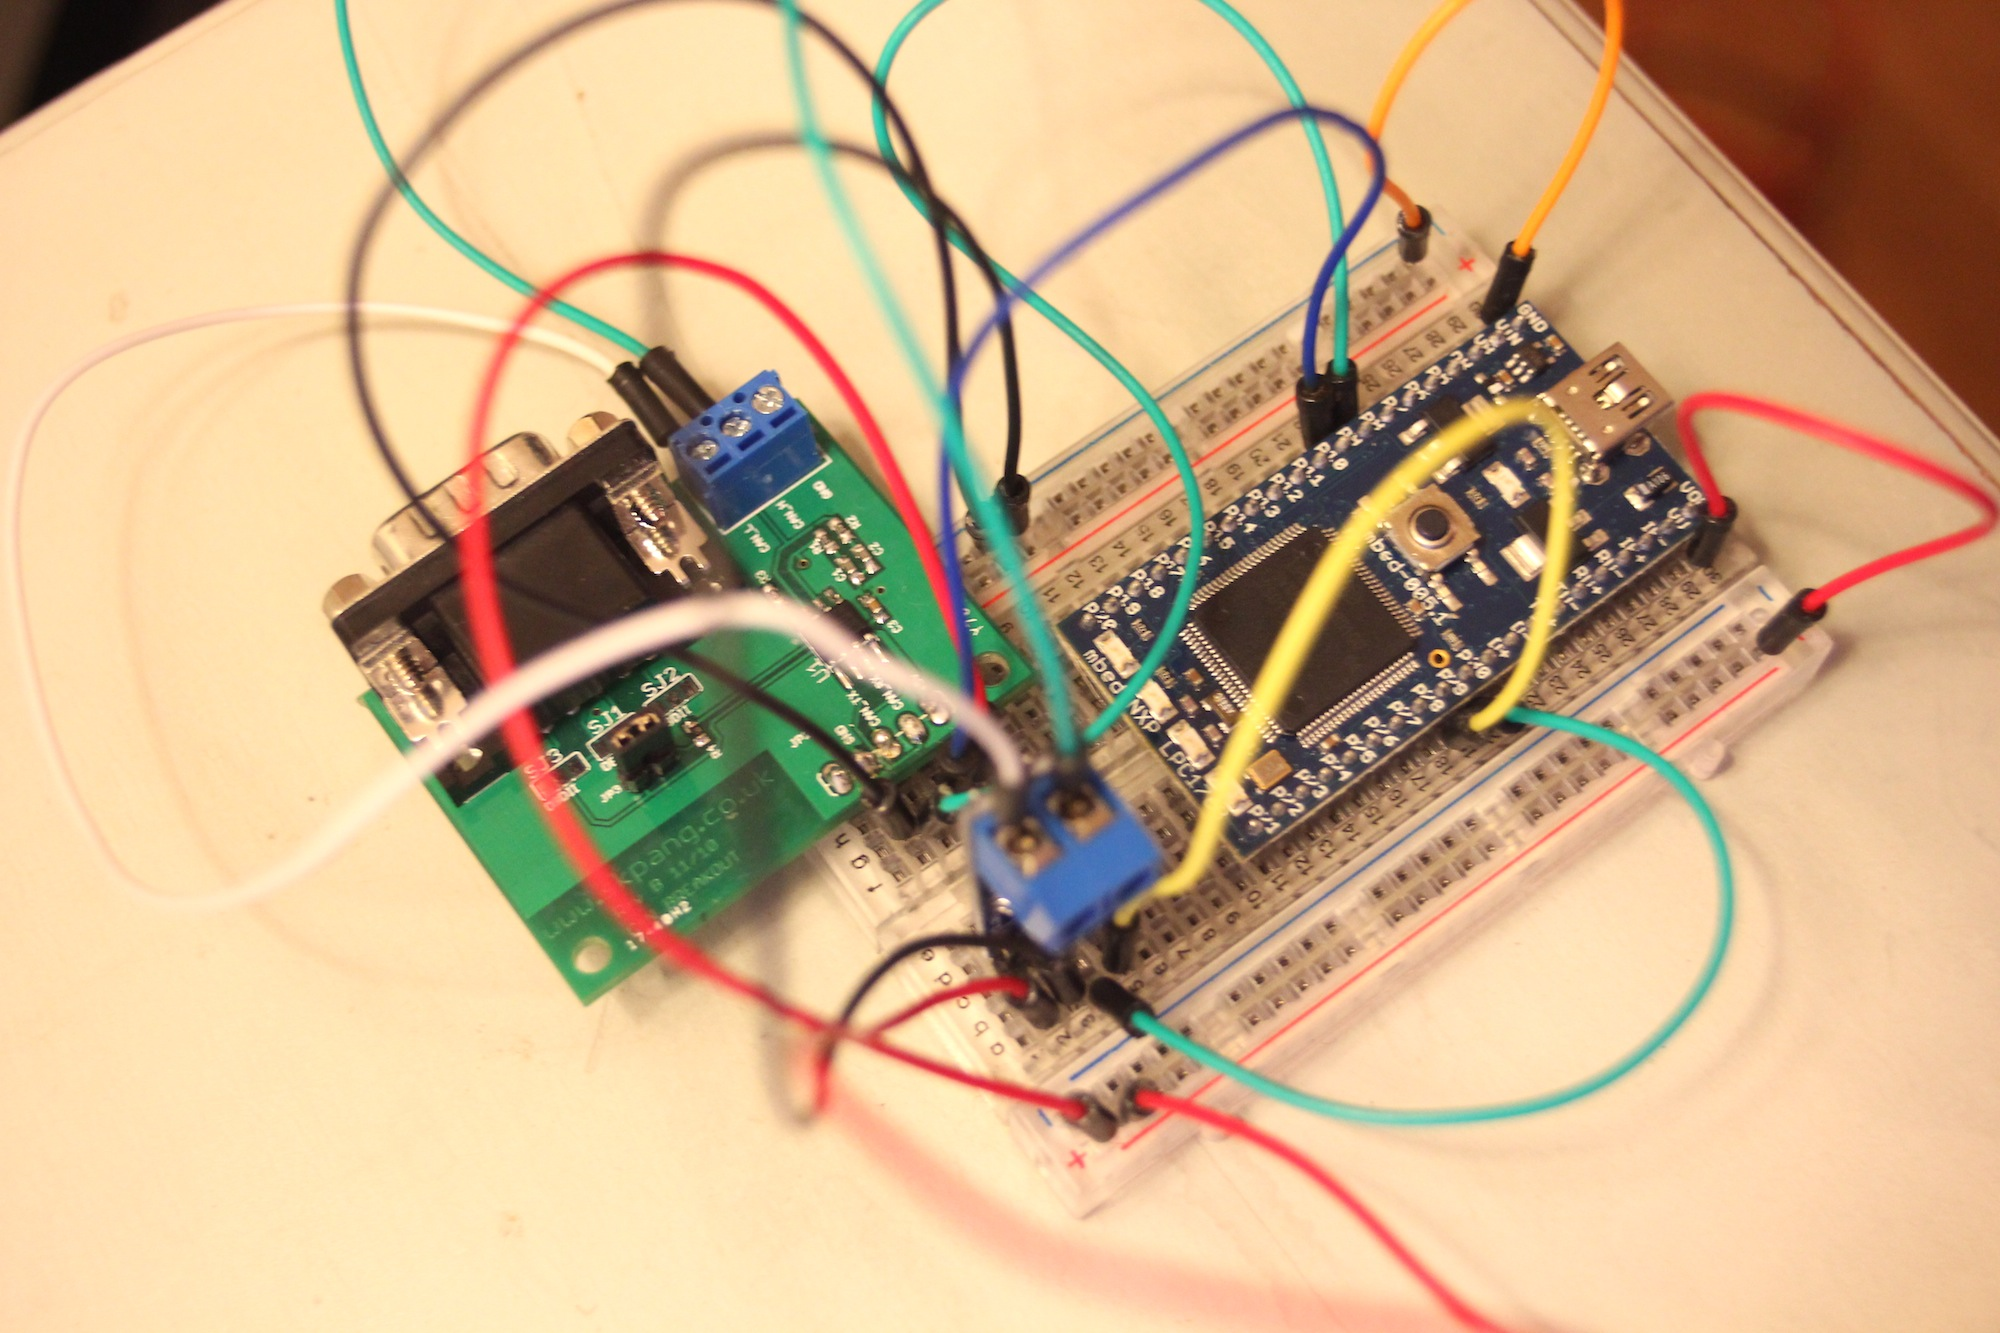 Test Can Bus With 2 Nodes Transceivers Cant Read The Sent Wiring Schematic Http Mbedorg Media Uploads Kaspars Loopback Single Board